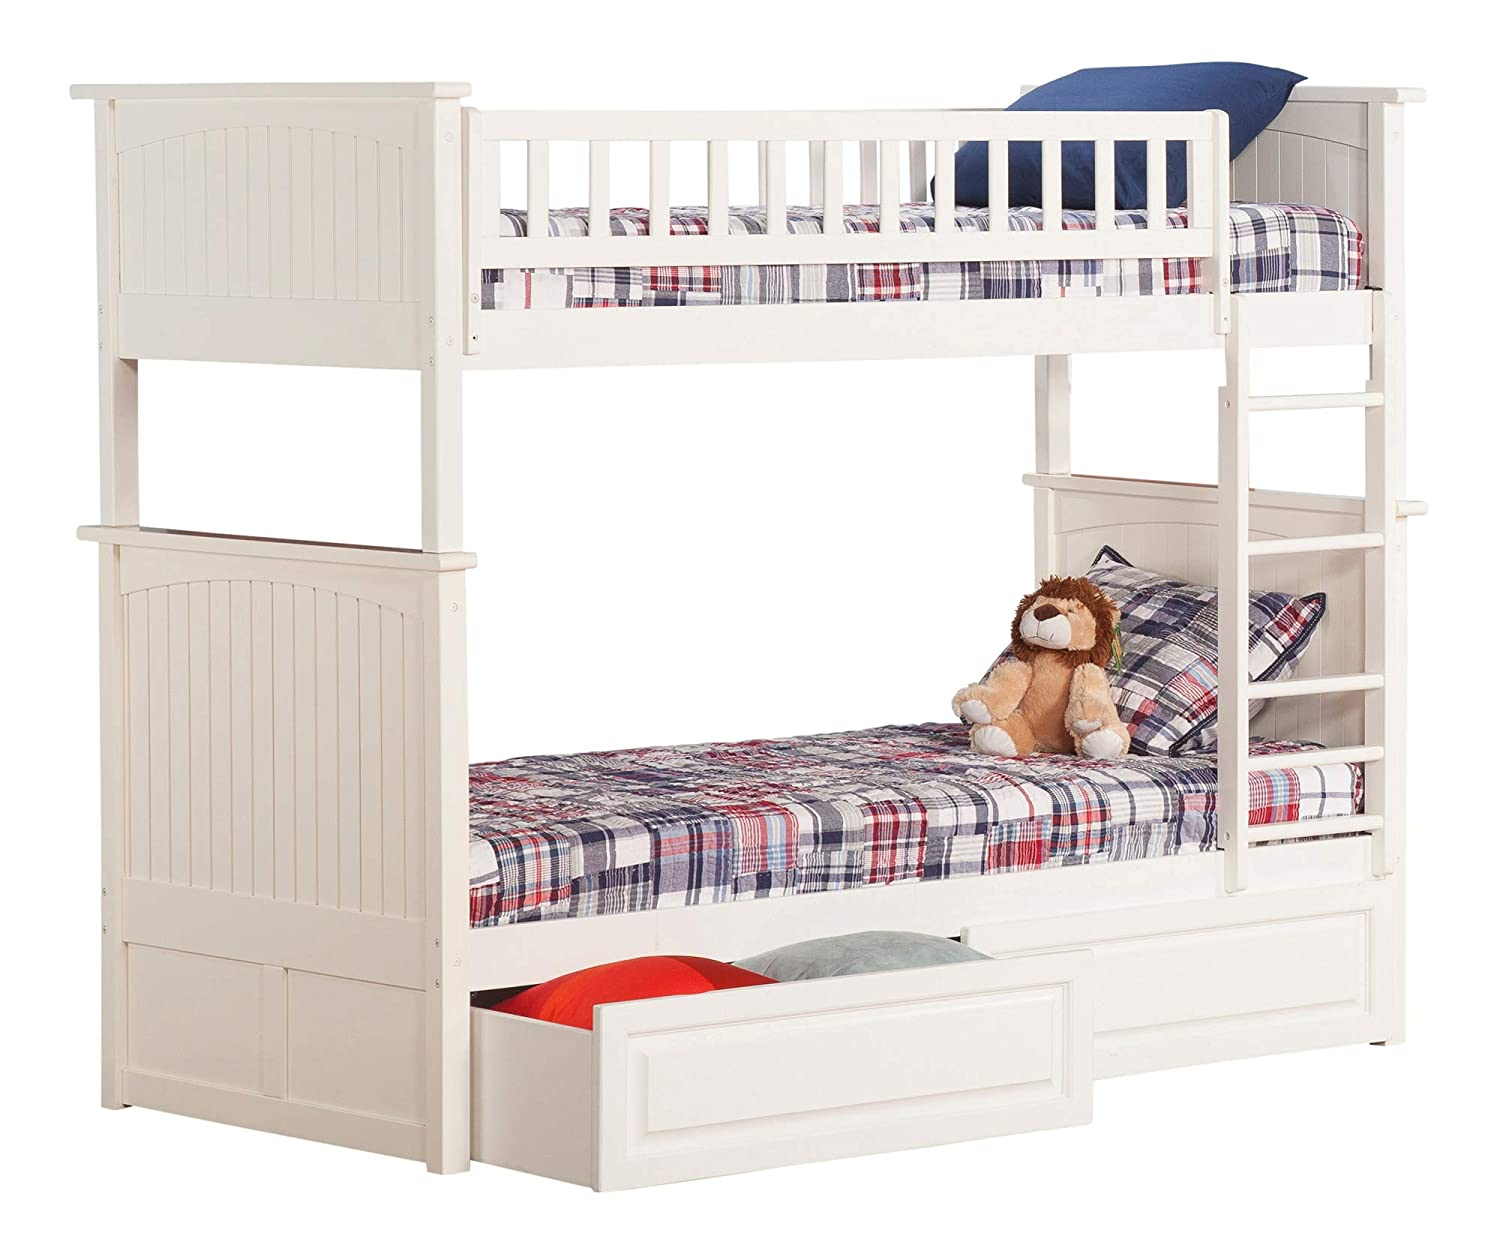 Atlantic Furniture Nantucket Bunk Bed with 2 Raised Panel Bed Drawers, Twin Twin, White